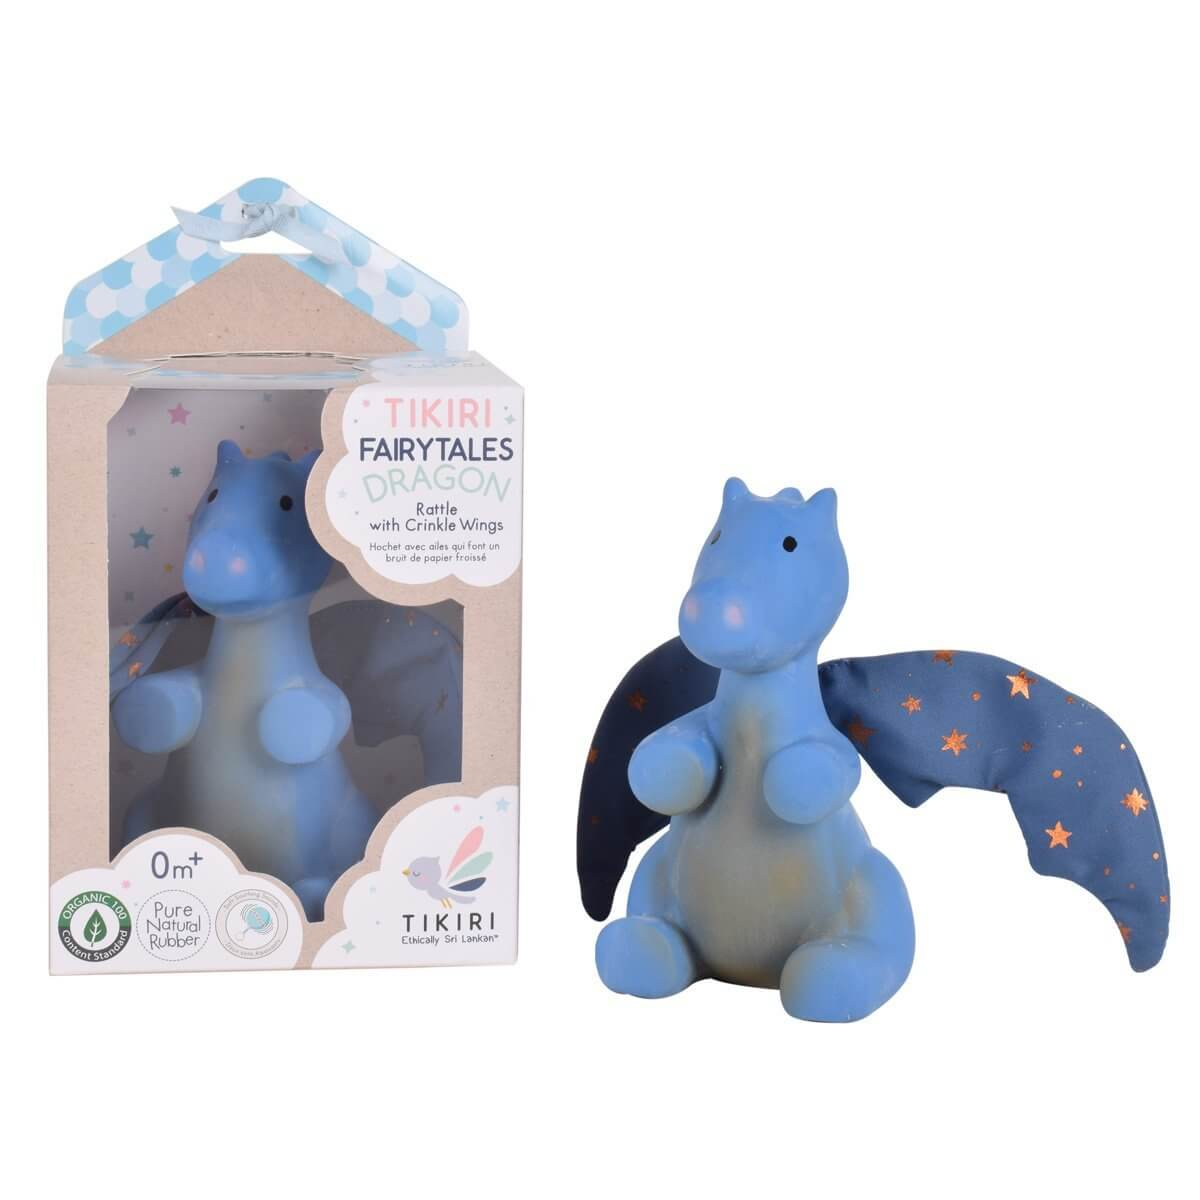 Midnight Dragon Natural Rubber Baby Teether and Rattle with Cotton Crinkle Wings